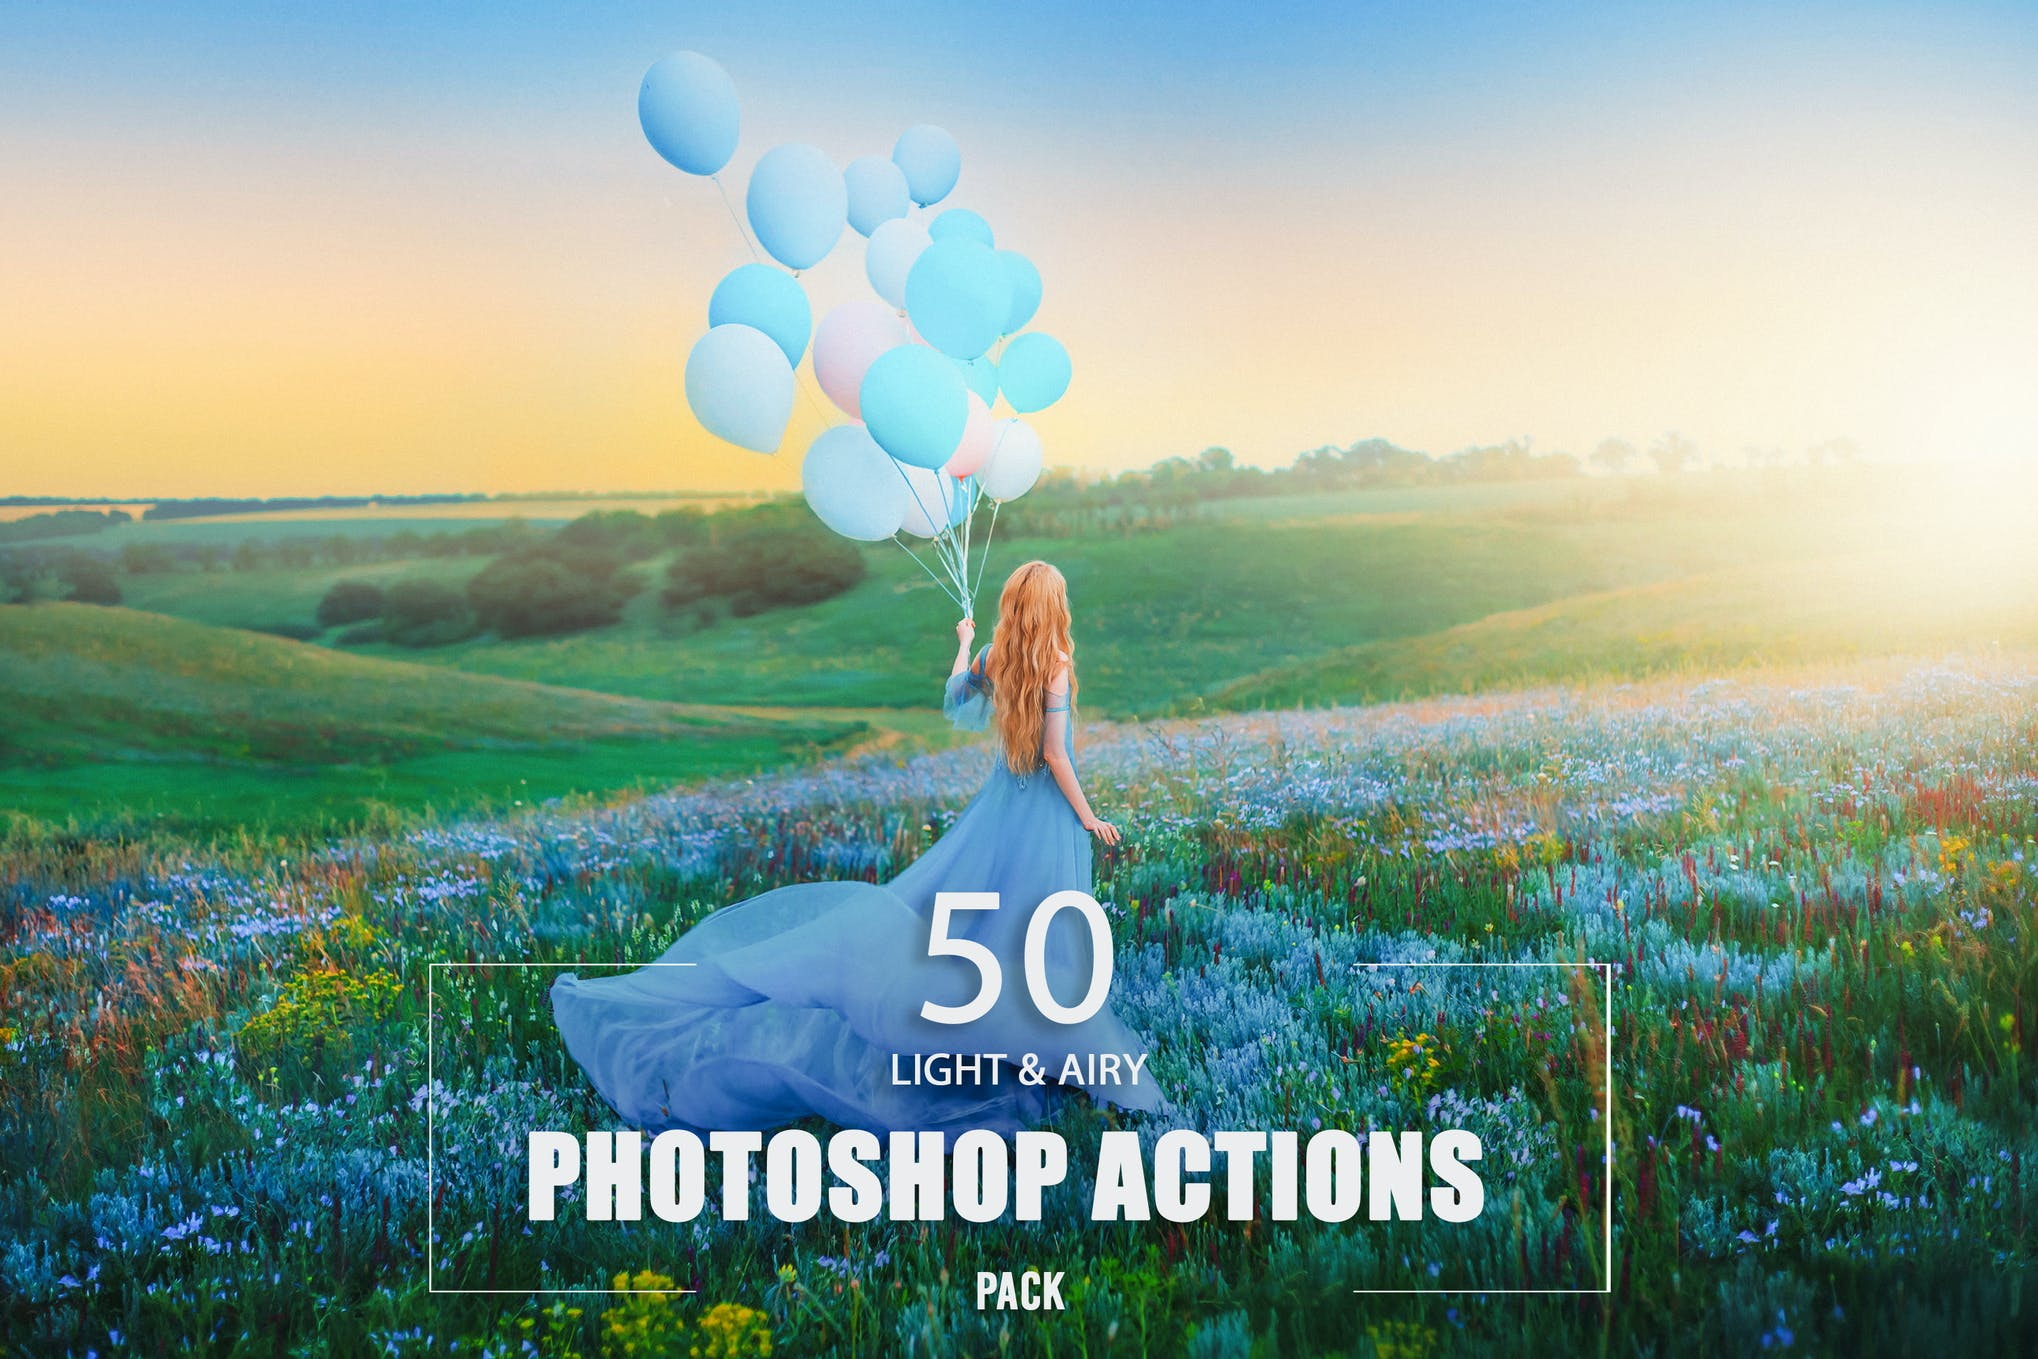 50 Light & Airy Photoshop Actions